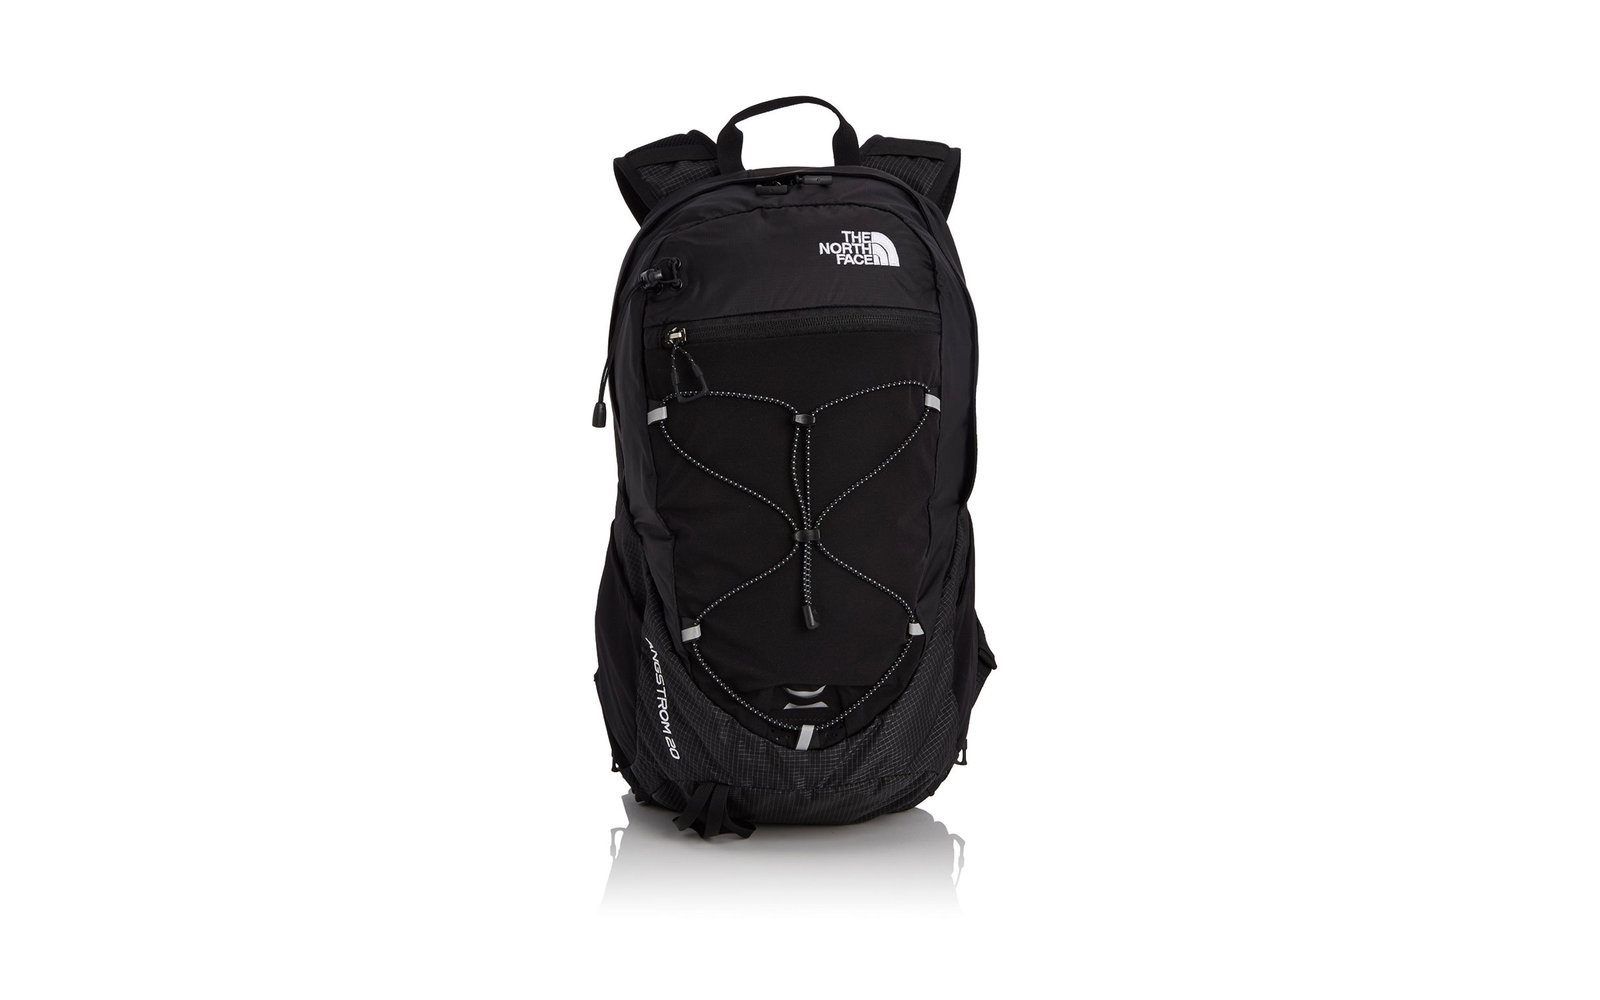 20L The North Face Angstrom